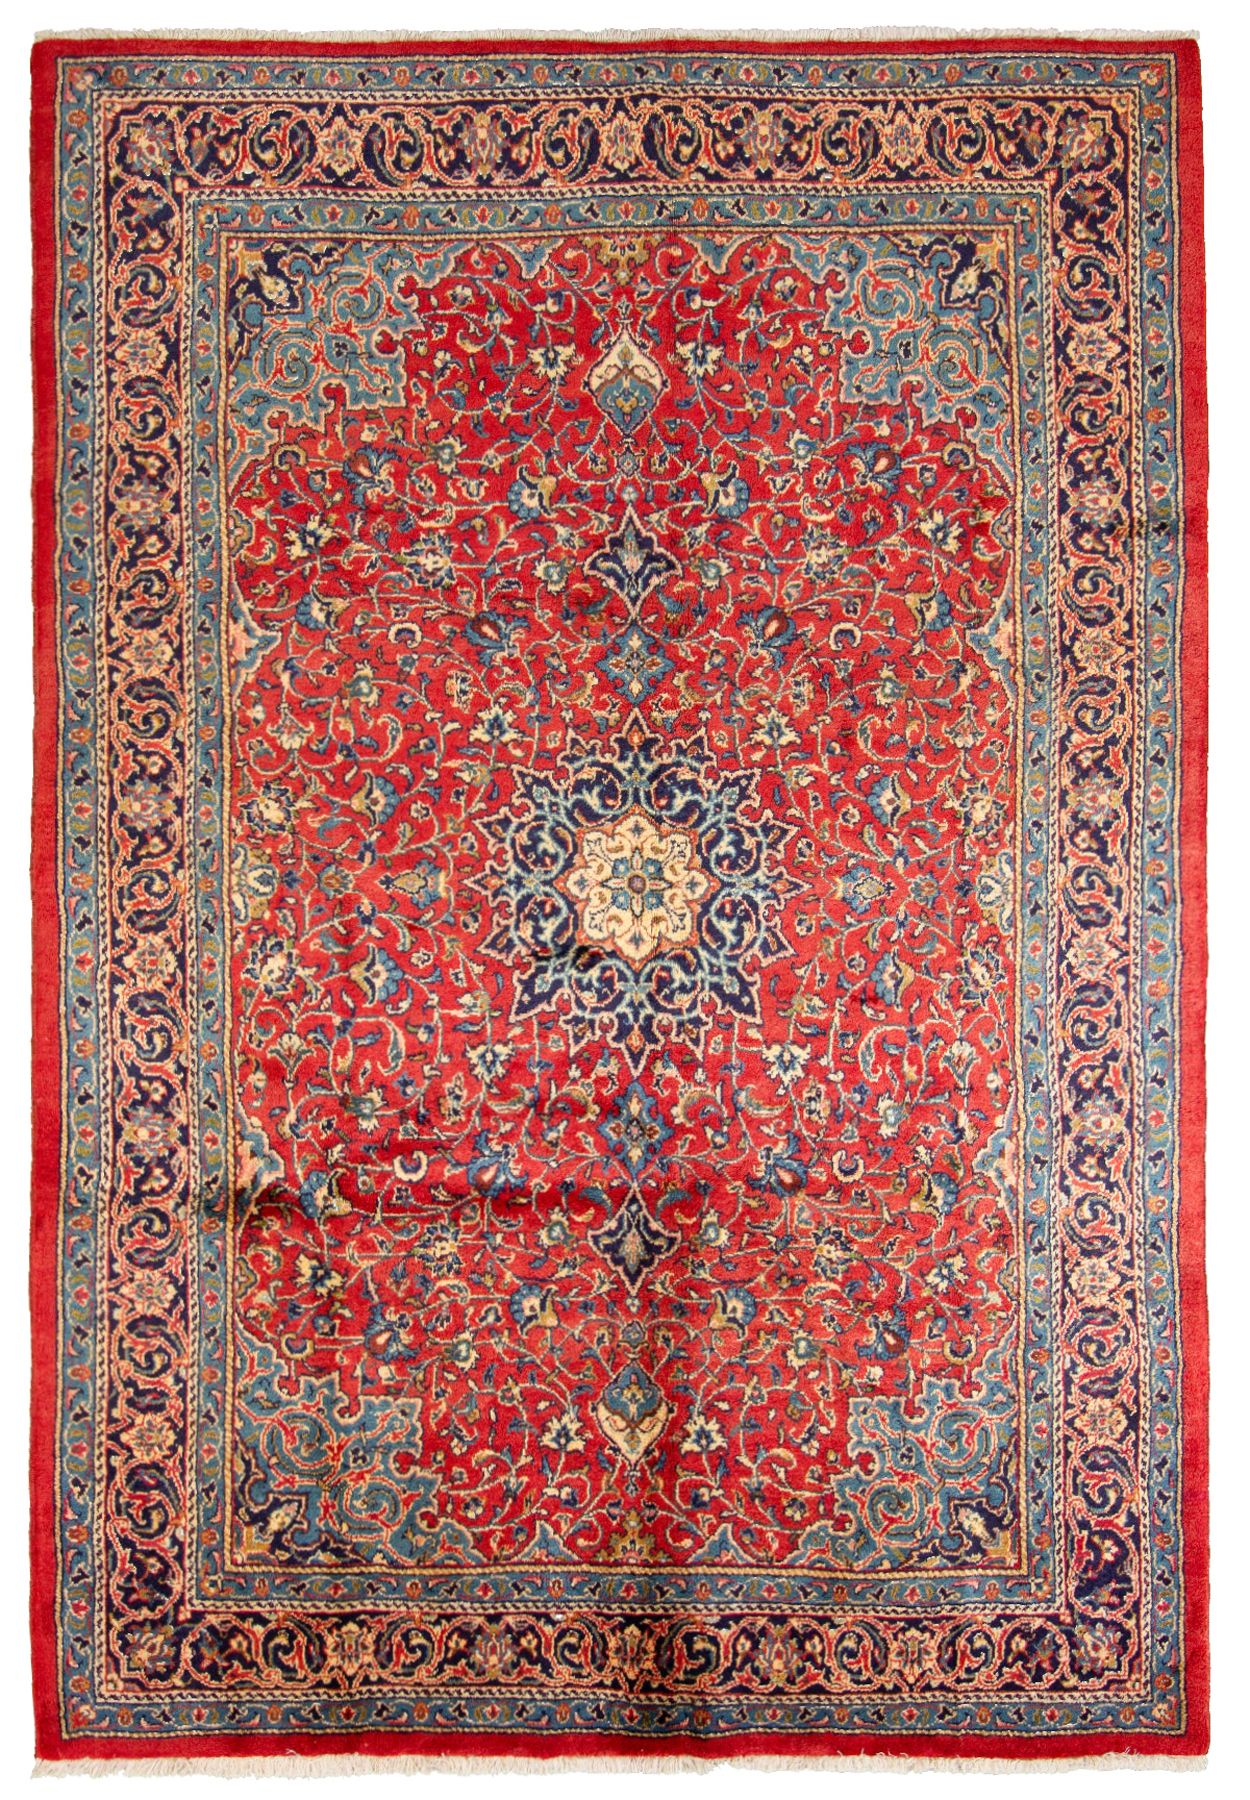 """Hand-knotted Mahal  Wool Rug 6'11"""" x 10'4""""  Size: 6'11"""" x 10'4"""""""